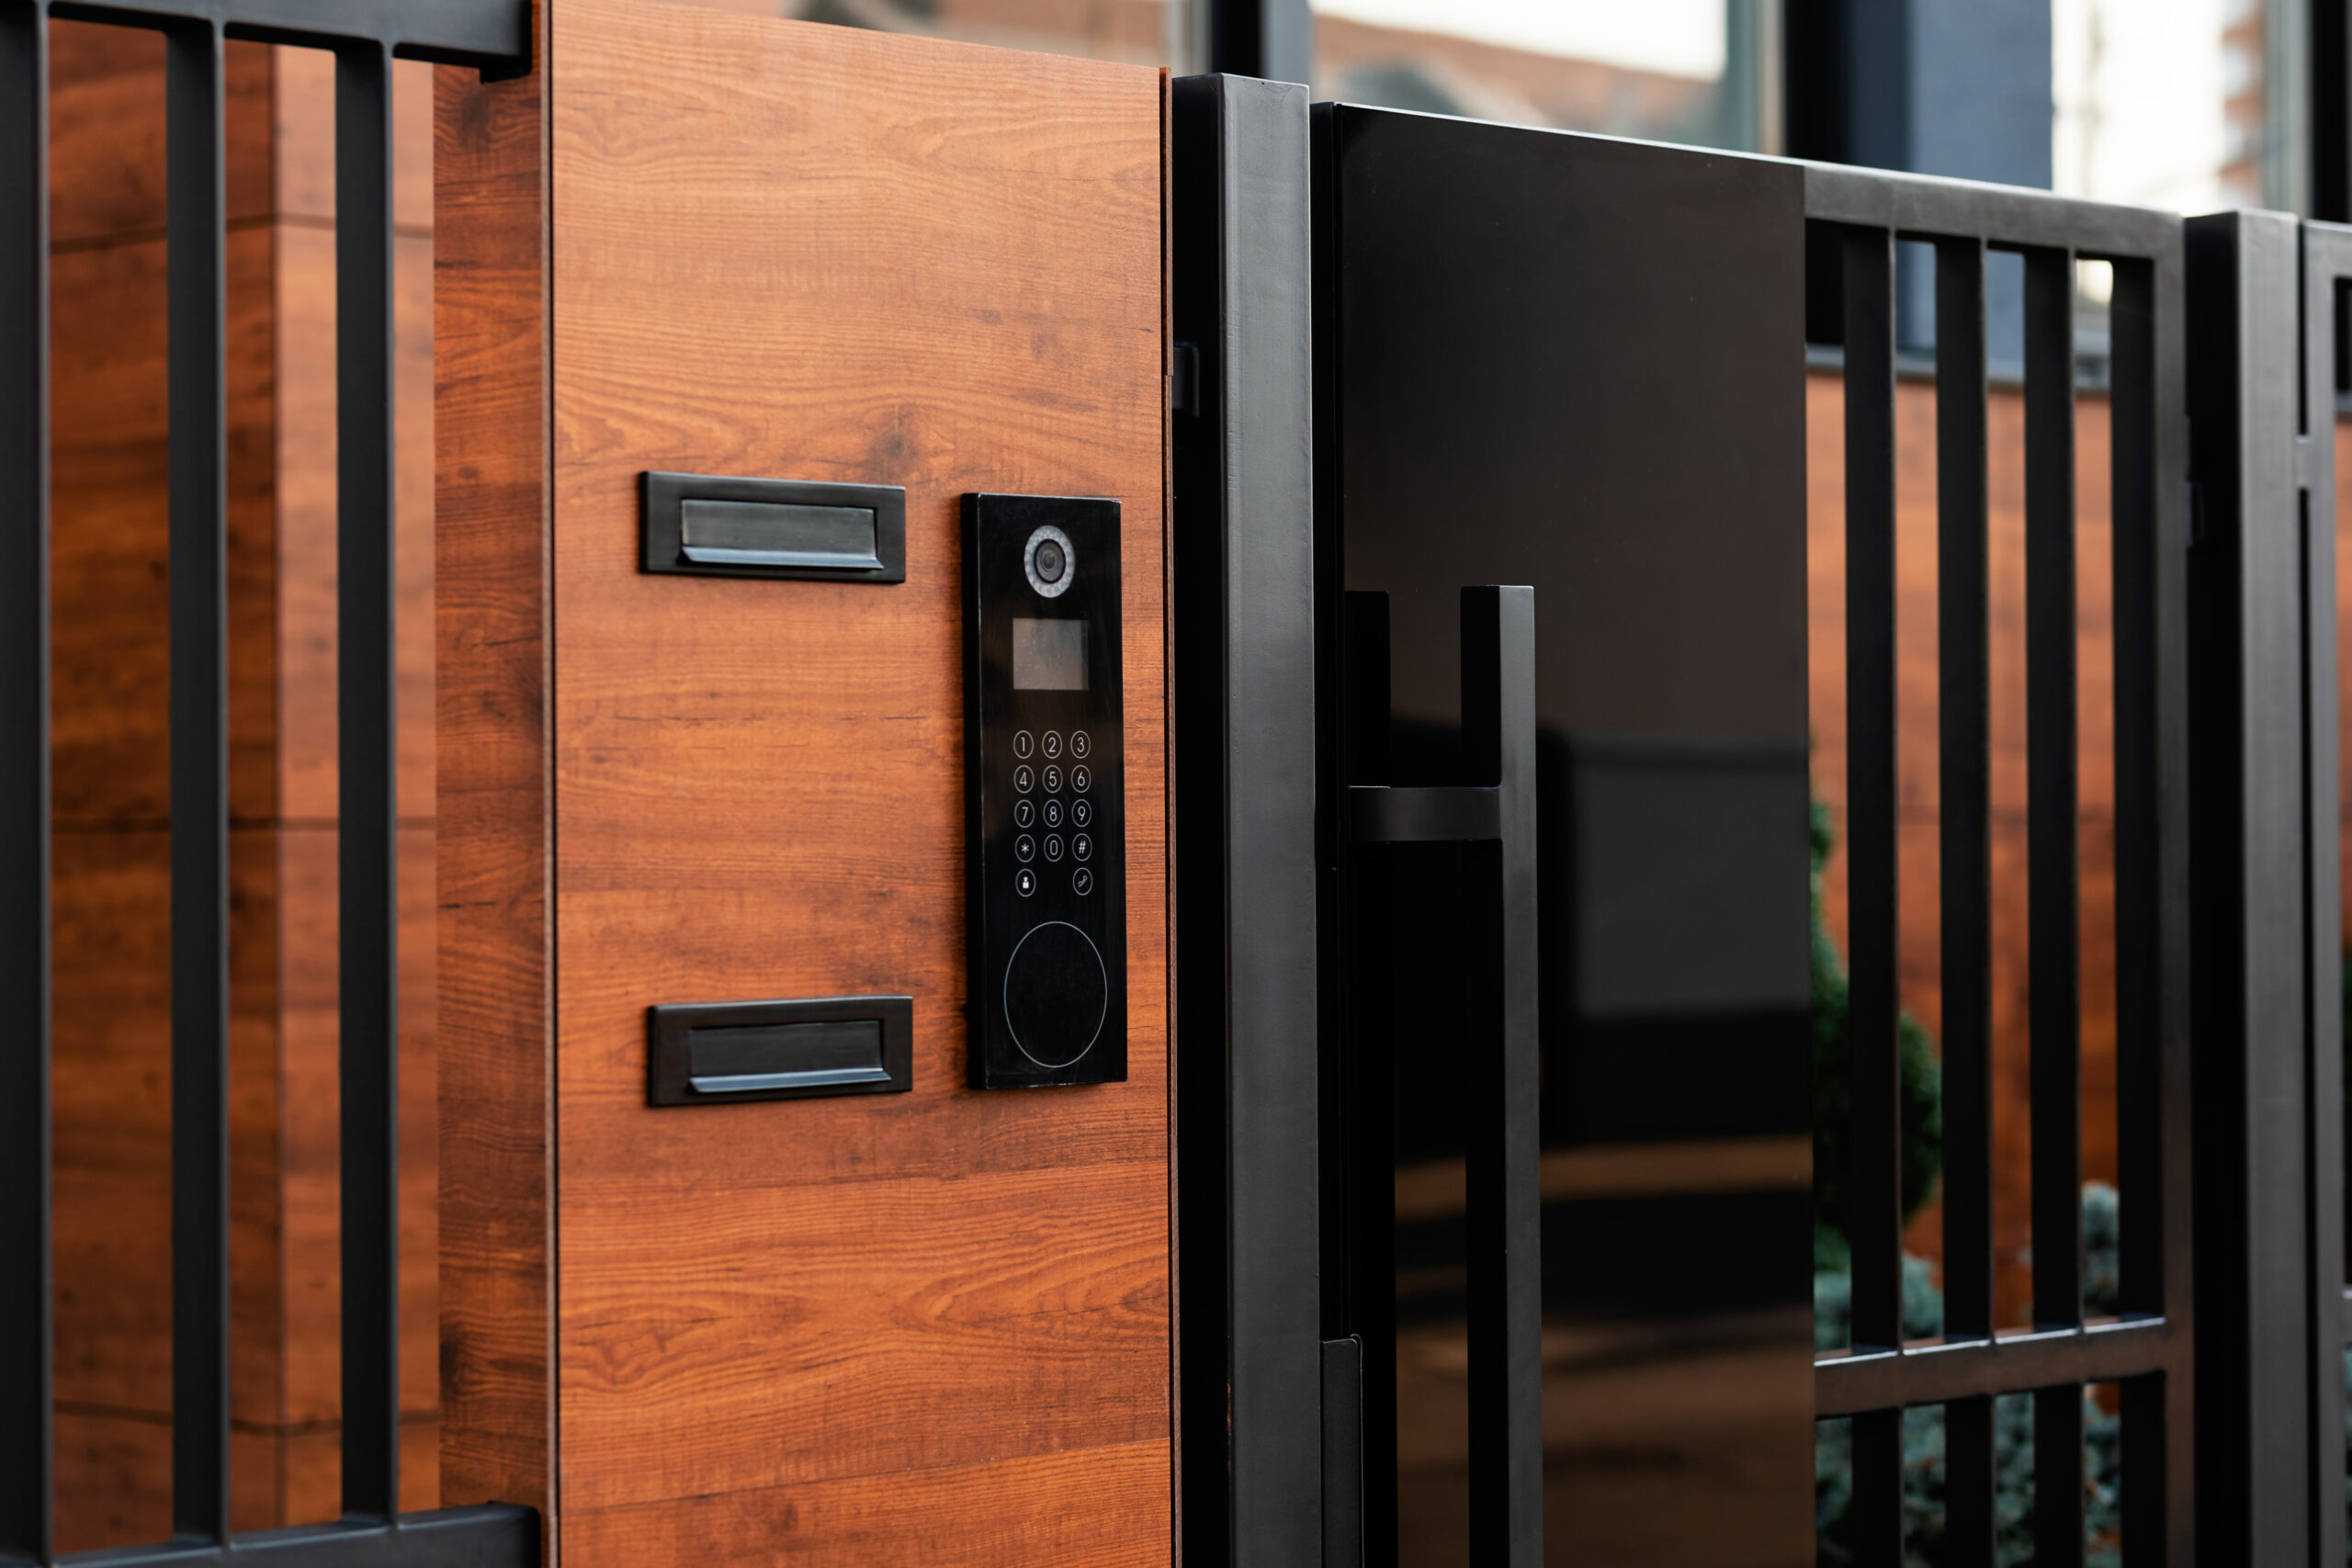 Intercom on entrance of an residential building - home security system - smart security system - Mdfx Within Home security installer in west london